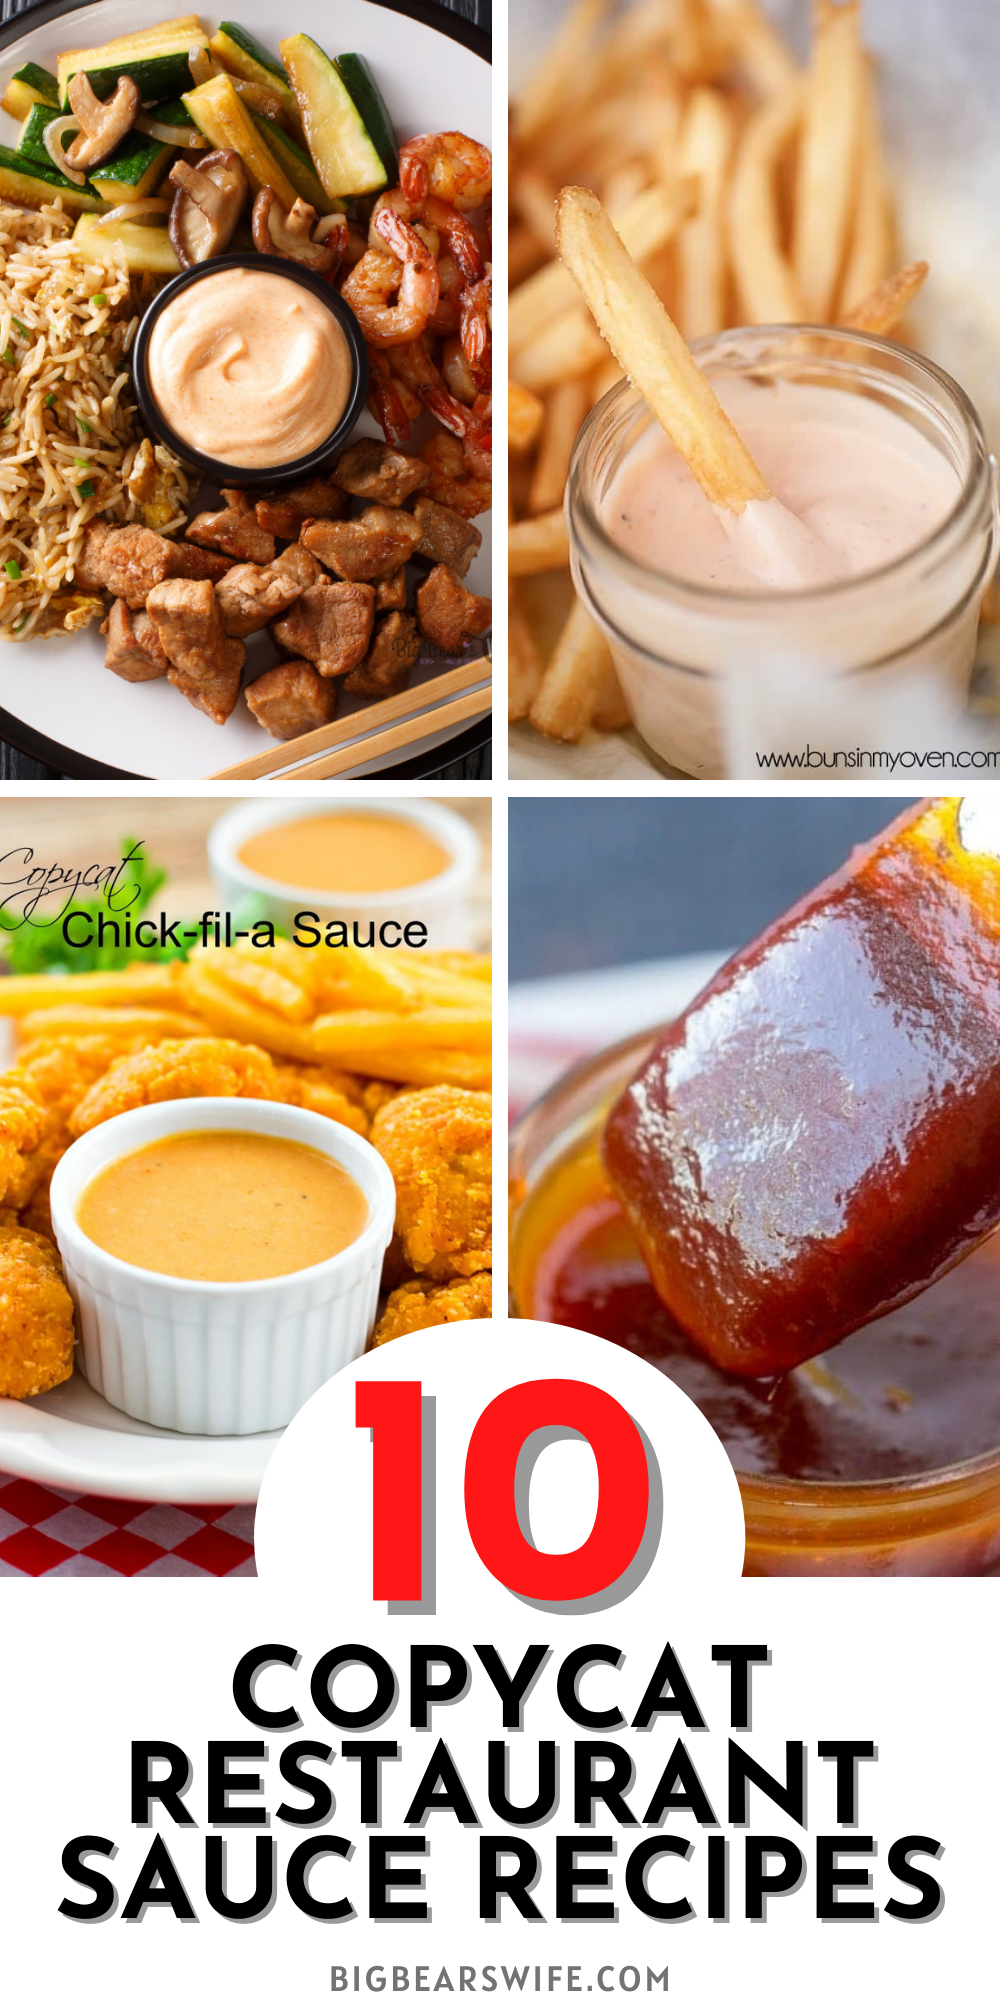 While we can't argue that a lot of restaurants are amazing, would we really love them as much if they didn't serve our favorite sauces? From Chick-Fil-A Sauce to dip our chicken nuggets in to Sauce on Big Macs; sauces at our favorite restaurants make our meals even more amazing and now you can make your favorite restaurant sauces at home with 10 of the best CopyCat Restaurant Sauce Recipes in this post!  via @bigbearswife